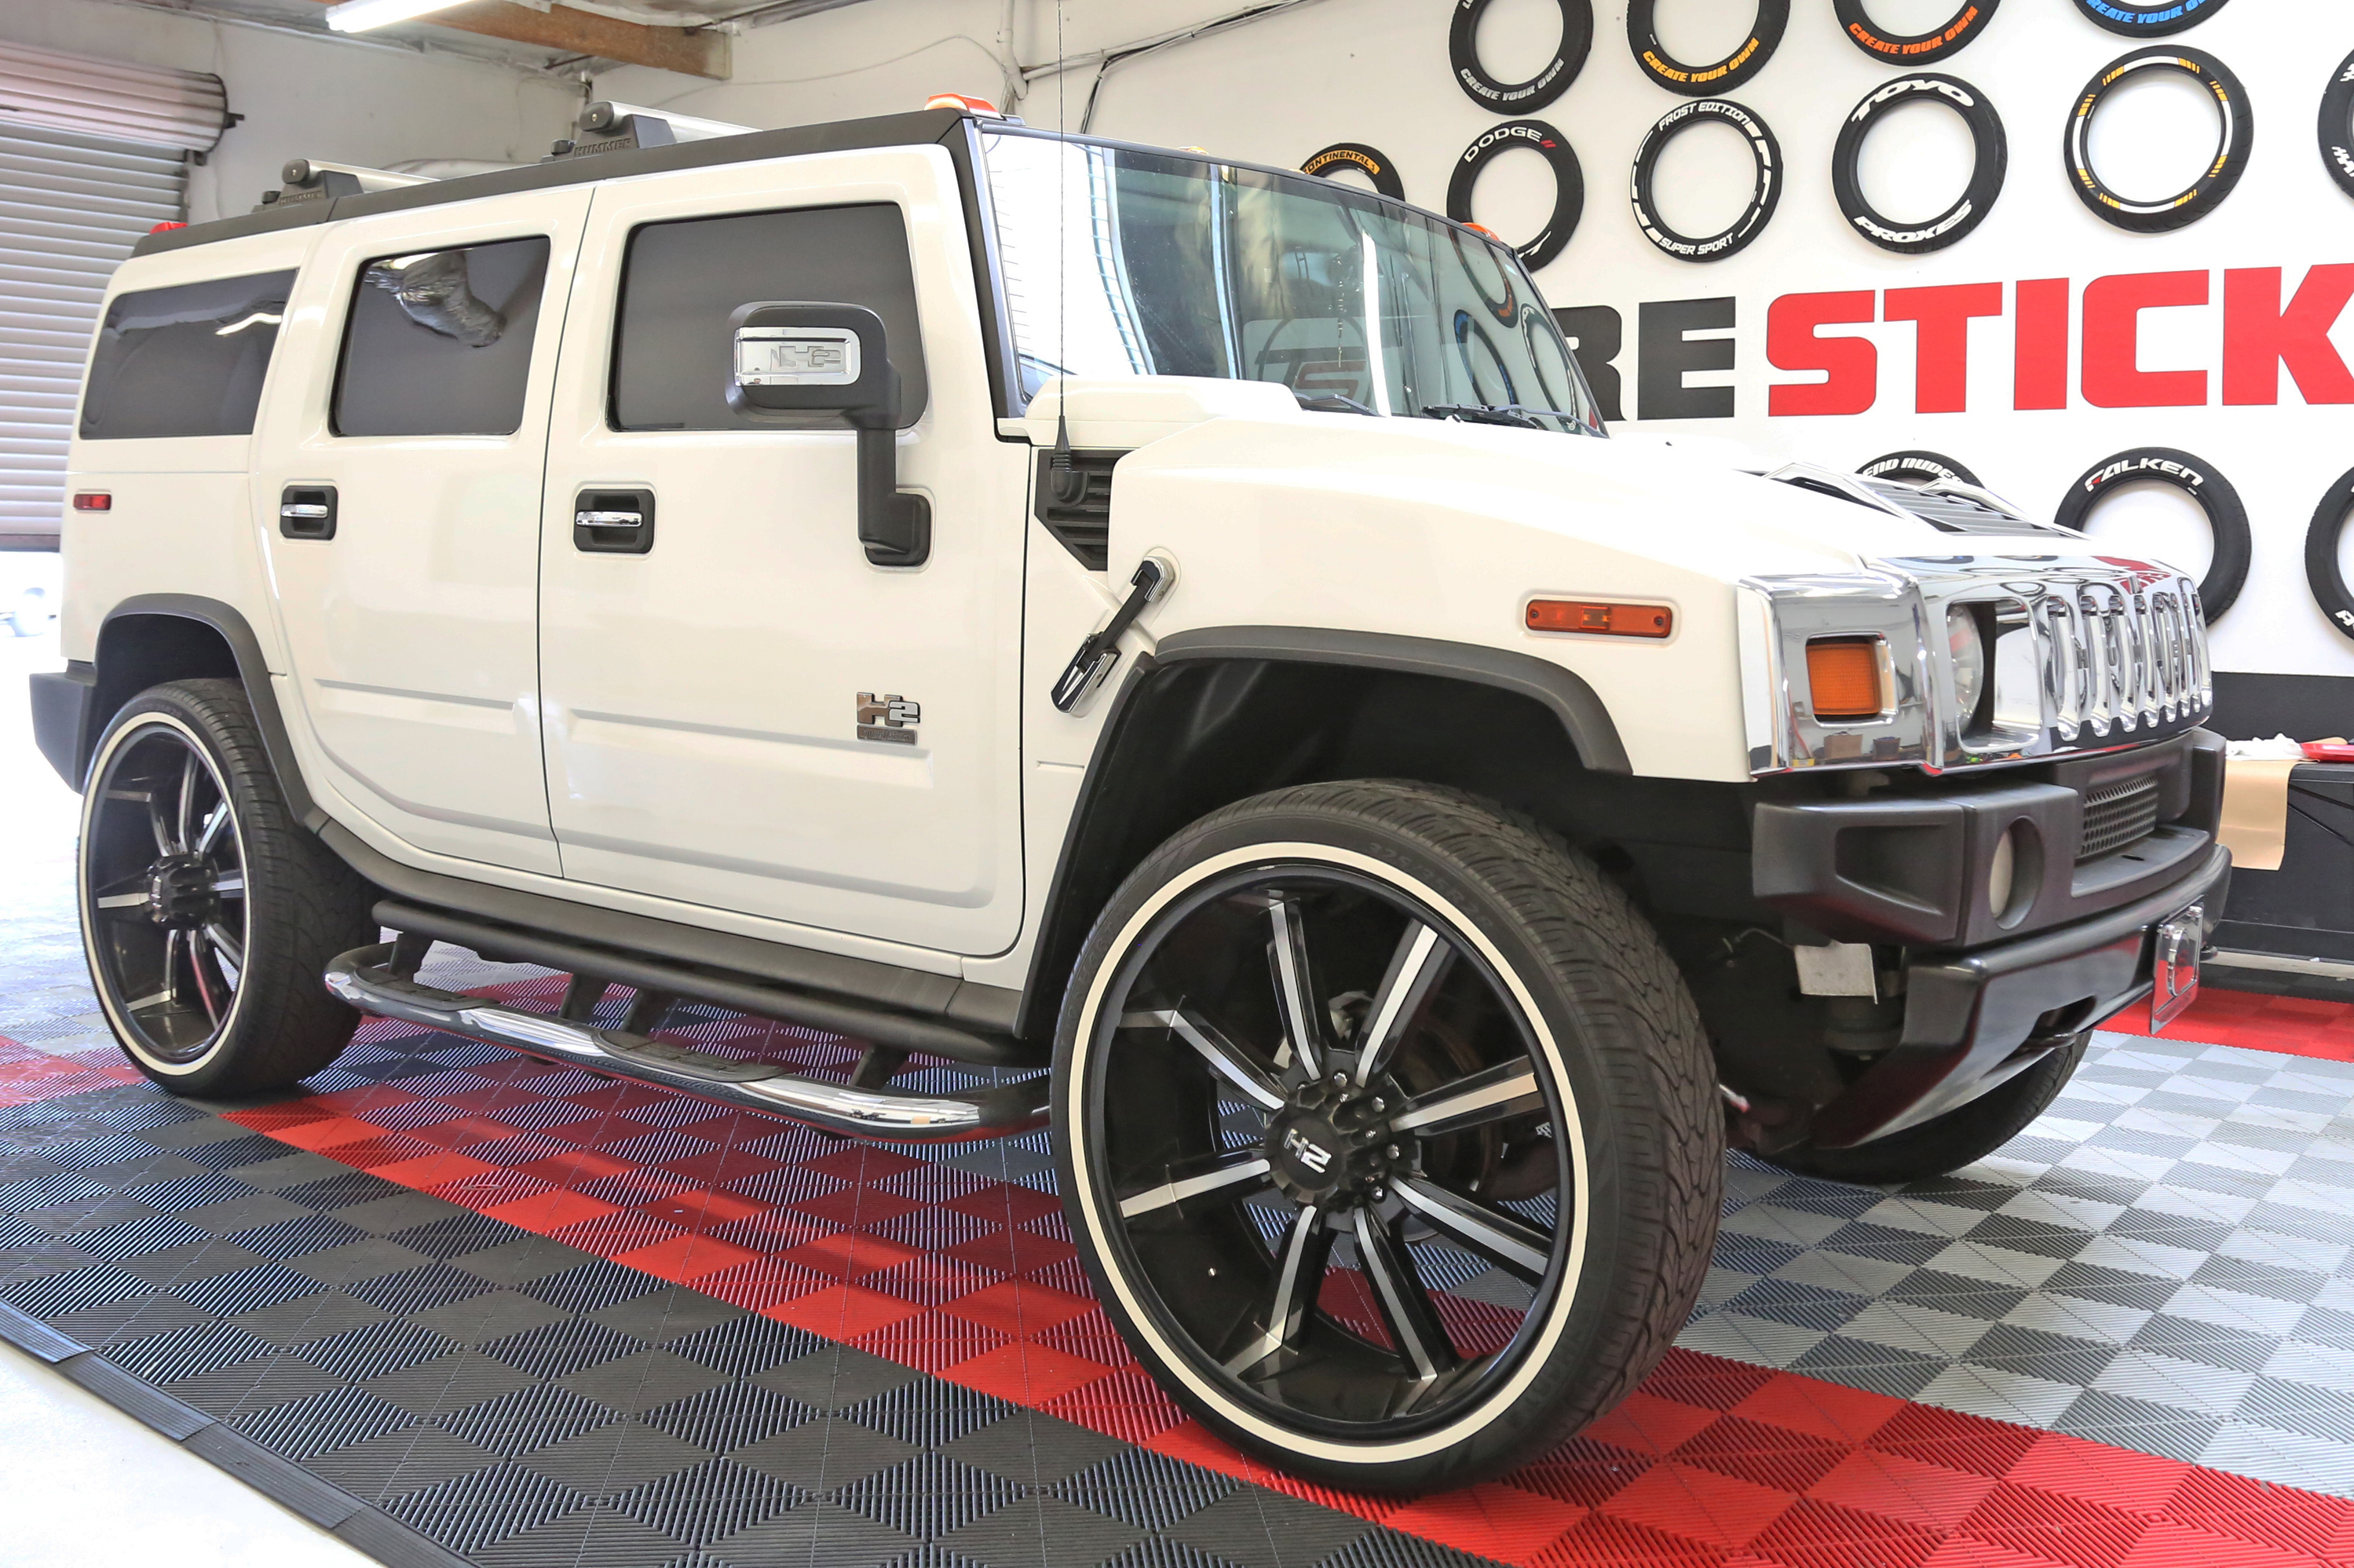 22 Inch Tires >> 26 Inch Whitewall Tires 22 Inch 24 Inch Tire Stickers Com